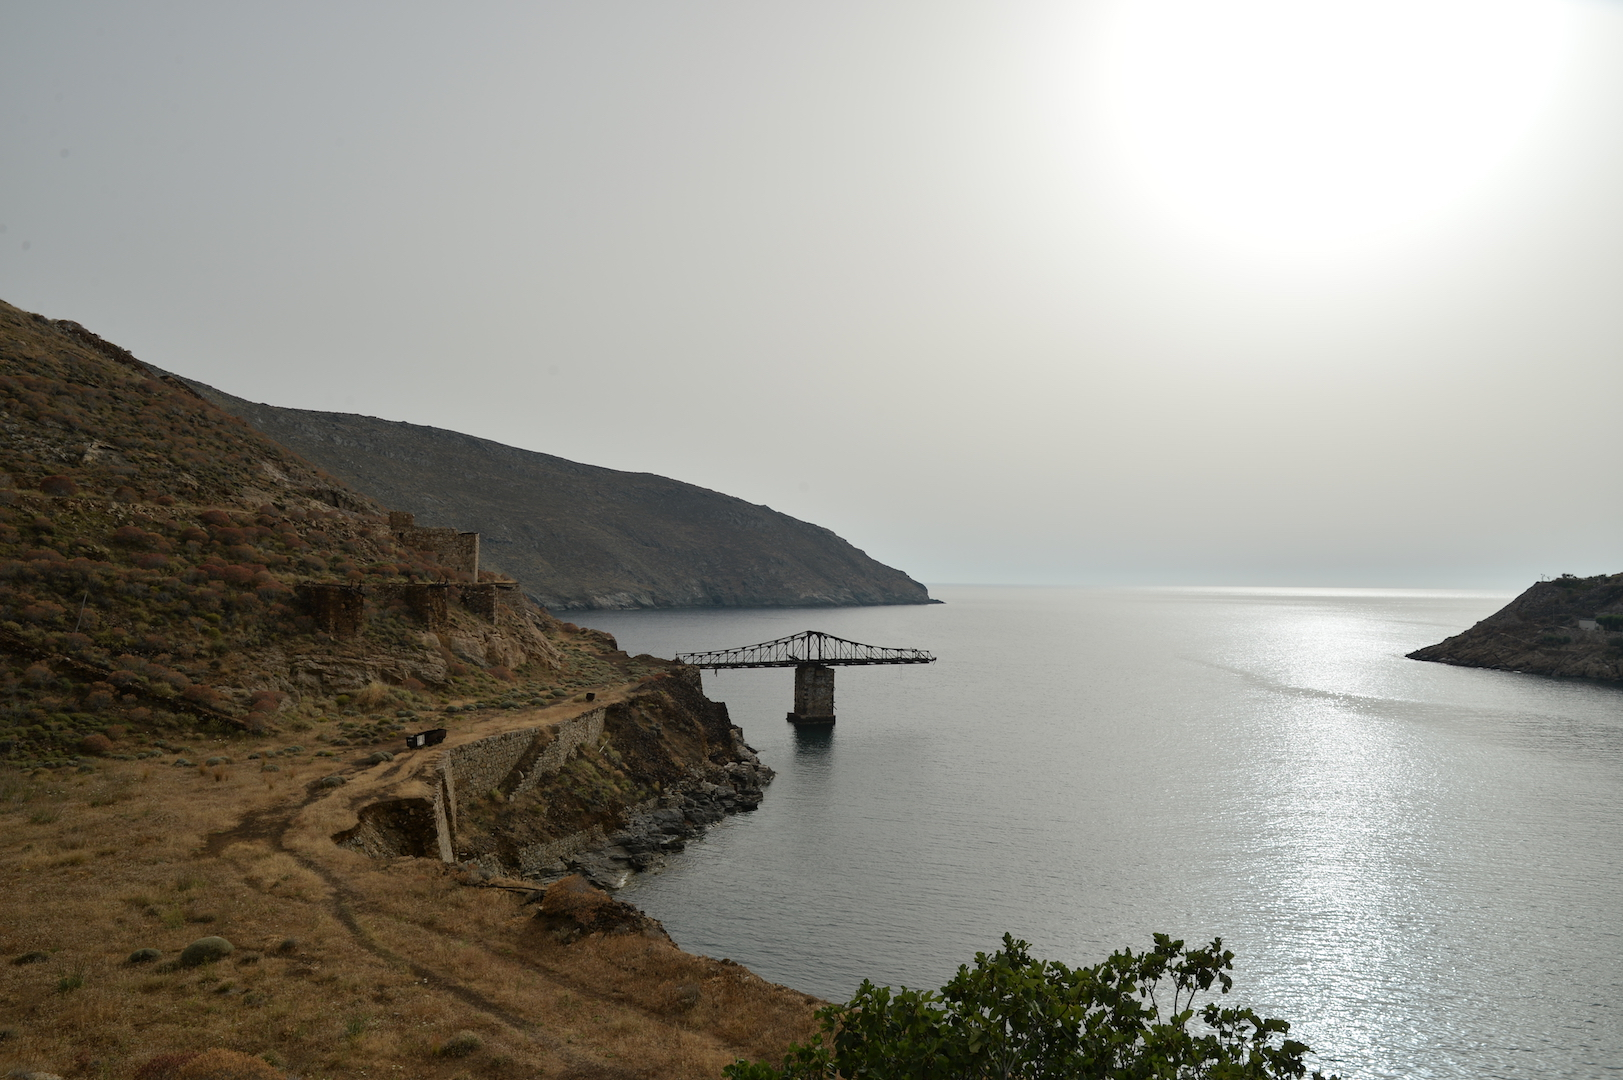 The-Way-We-Saw-It-Megalo-Livadi-Pier-Serifos